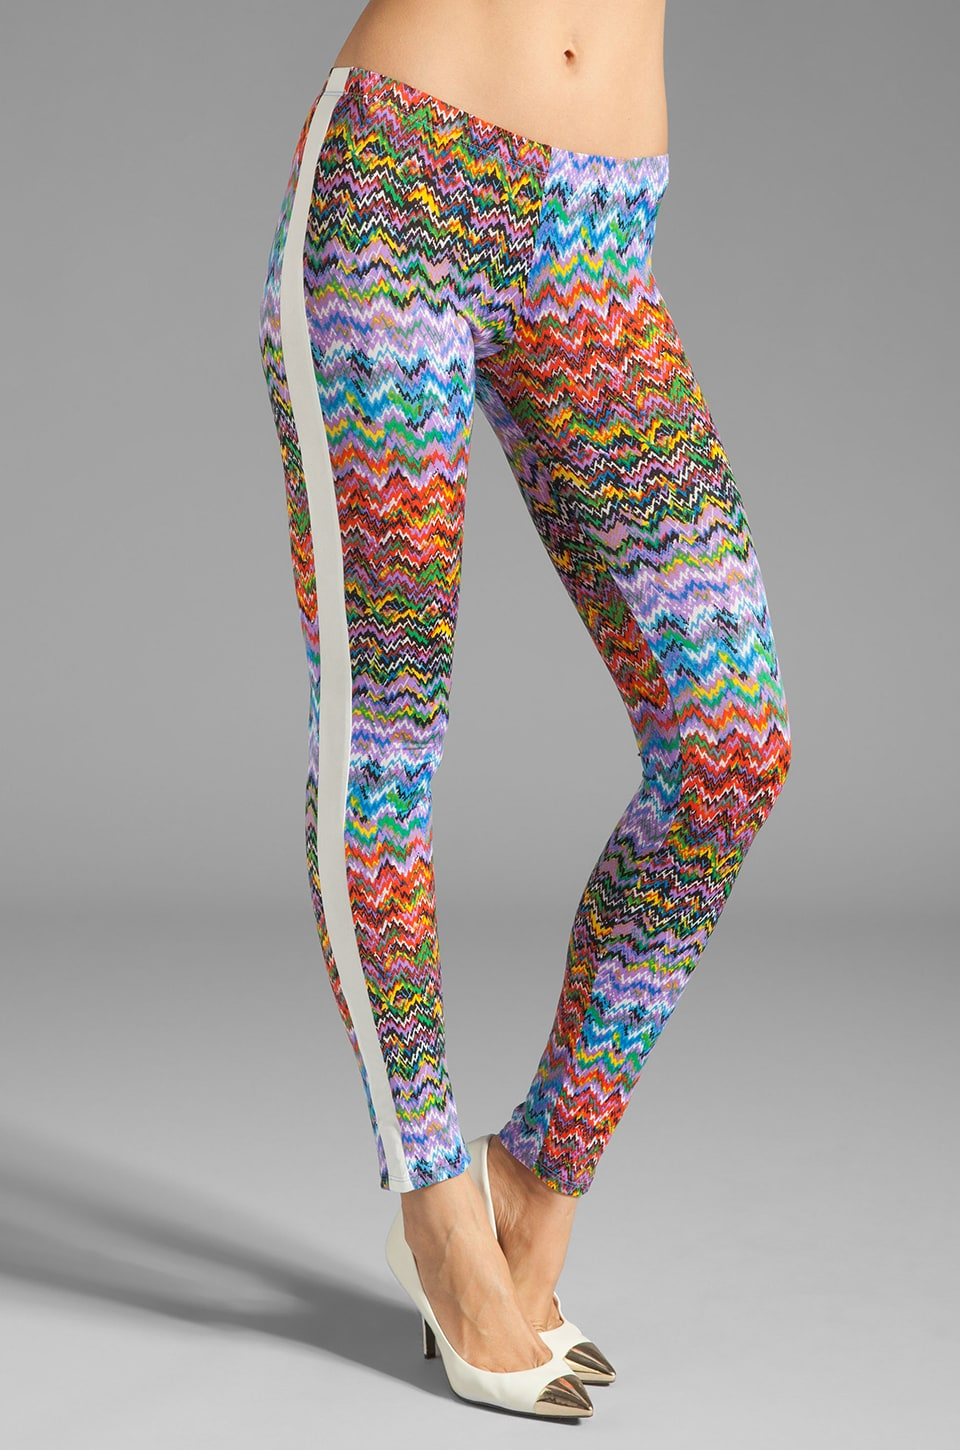 T-Bags LosAngeles Leggings with Faux Leather Trim in Rainbow